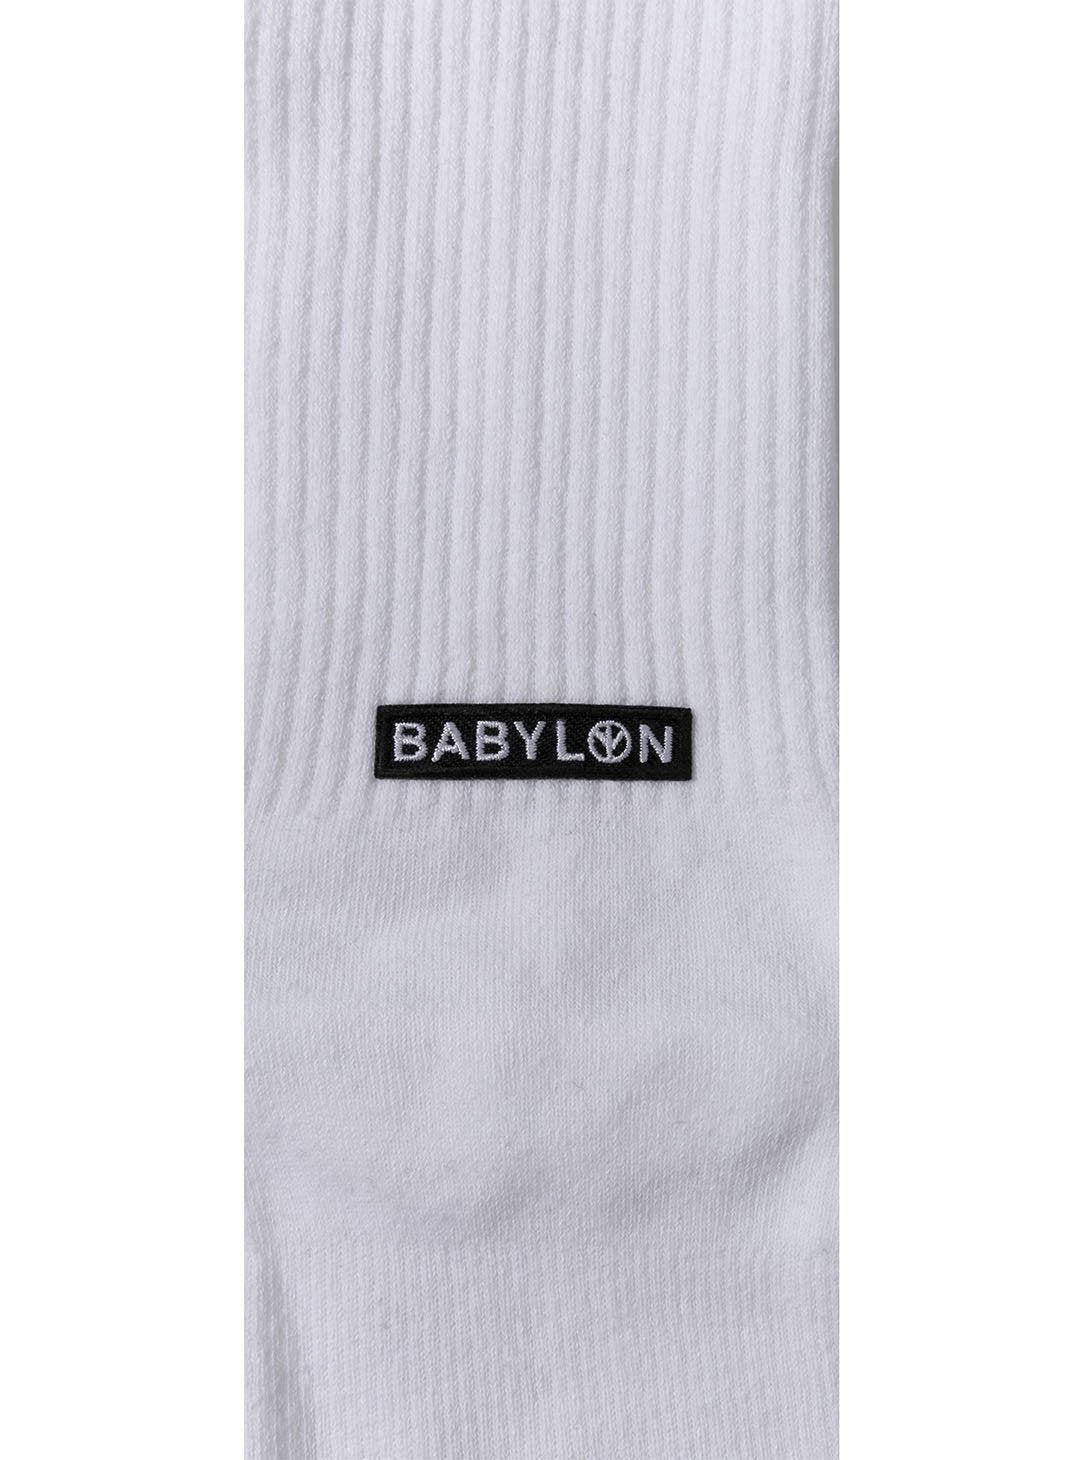 BABYLON LOGO SOCKS